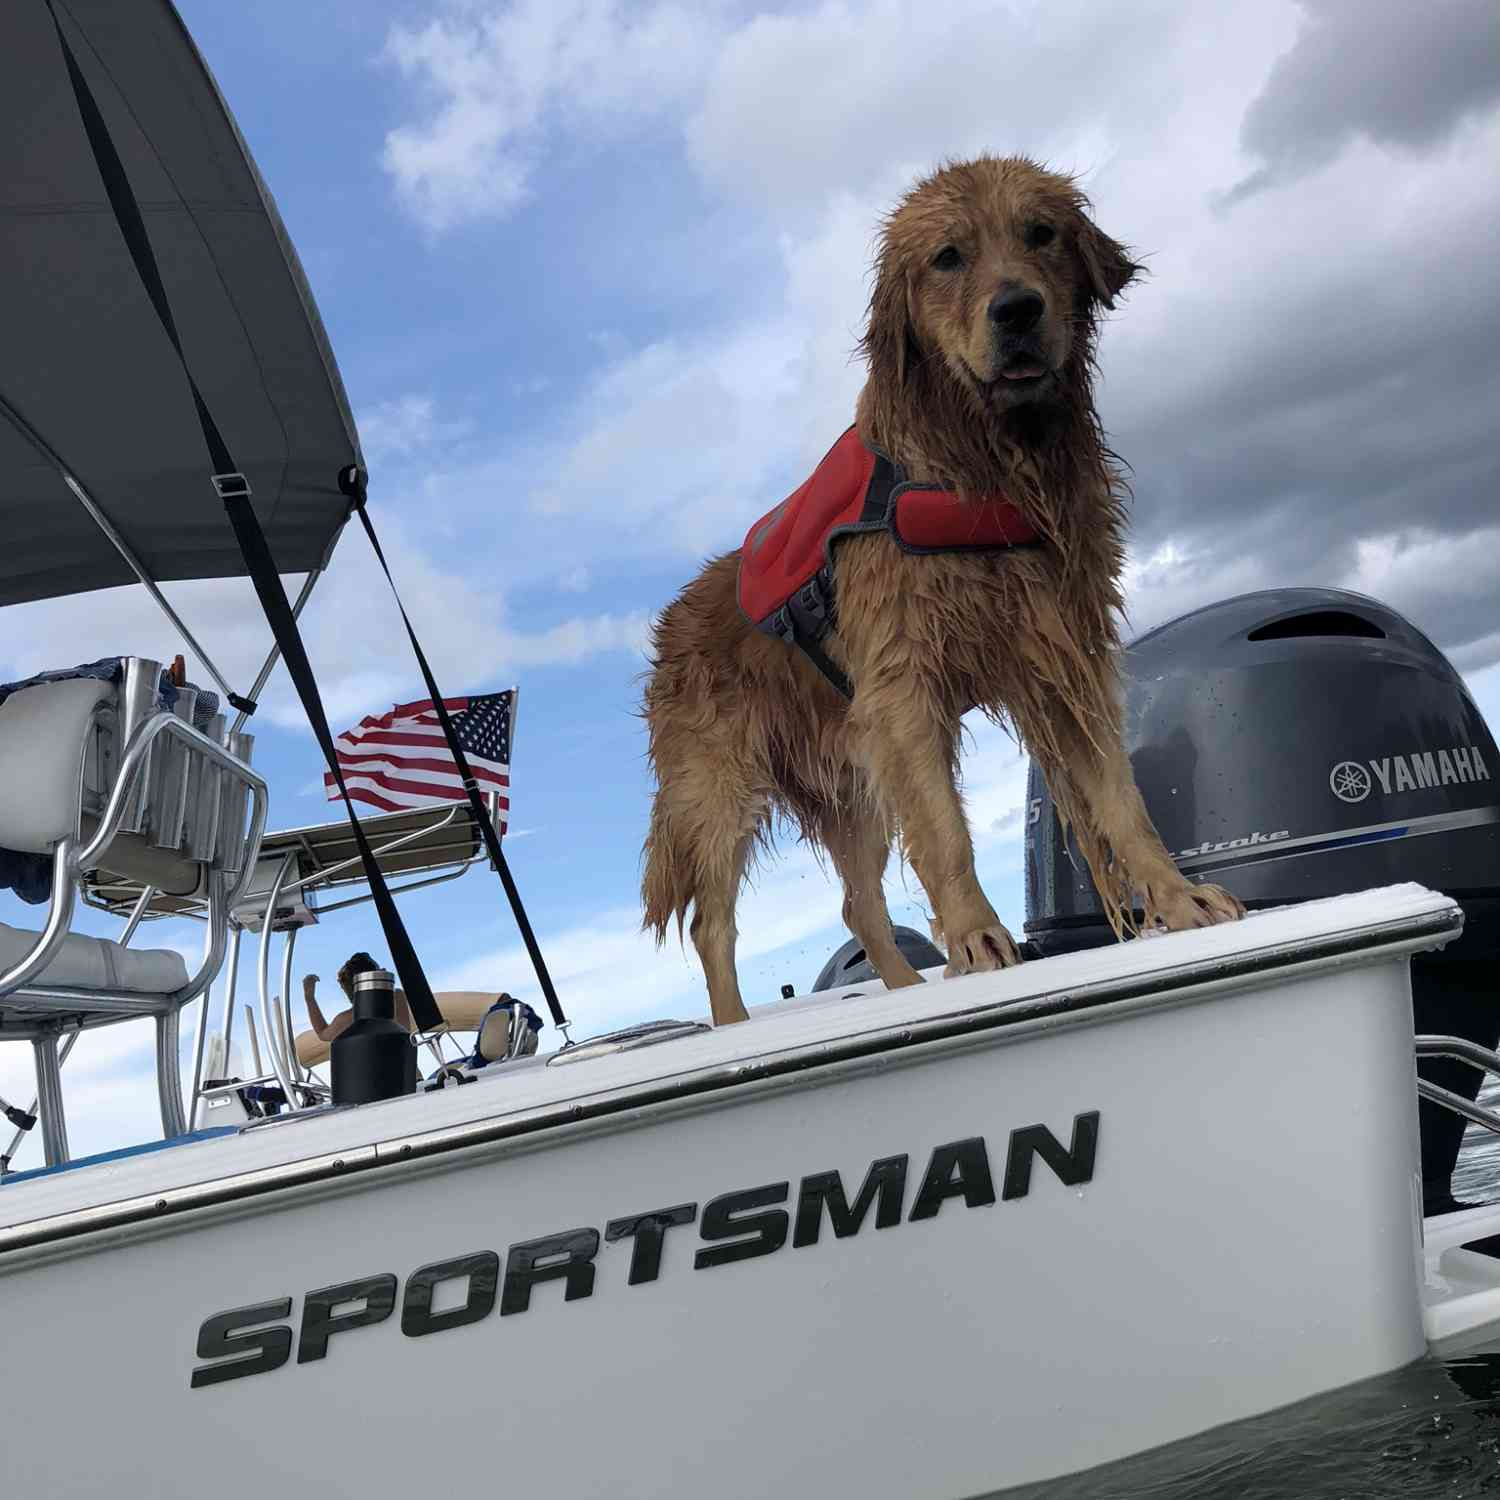 Title: The Real Captain - On board their Sportsman Masters 207 Bay Boat - Location: Belle Isle, Florida. Participating in the Photo Contest #SportsmanMay2020